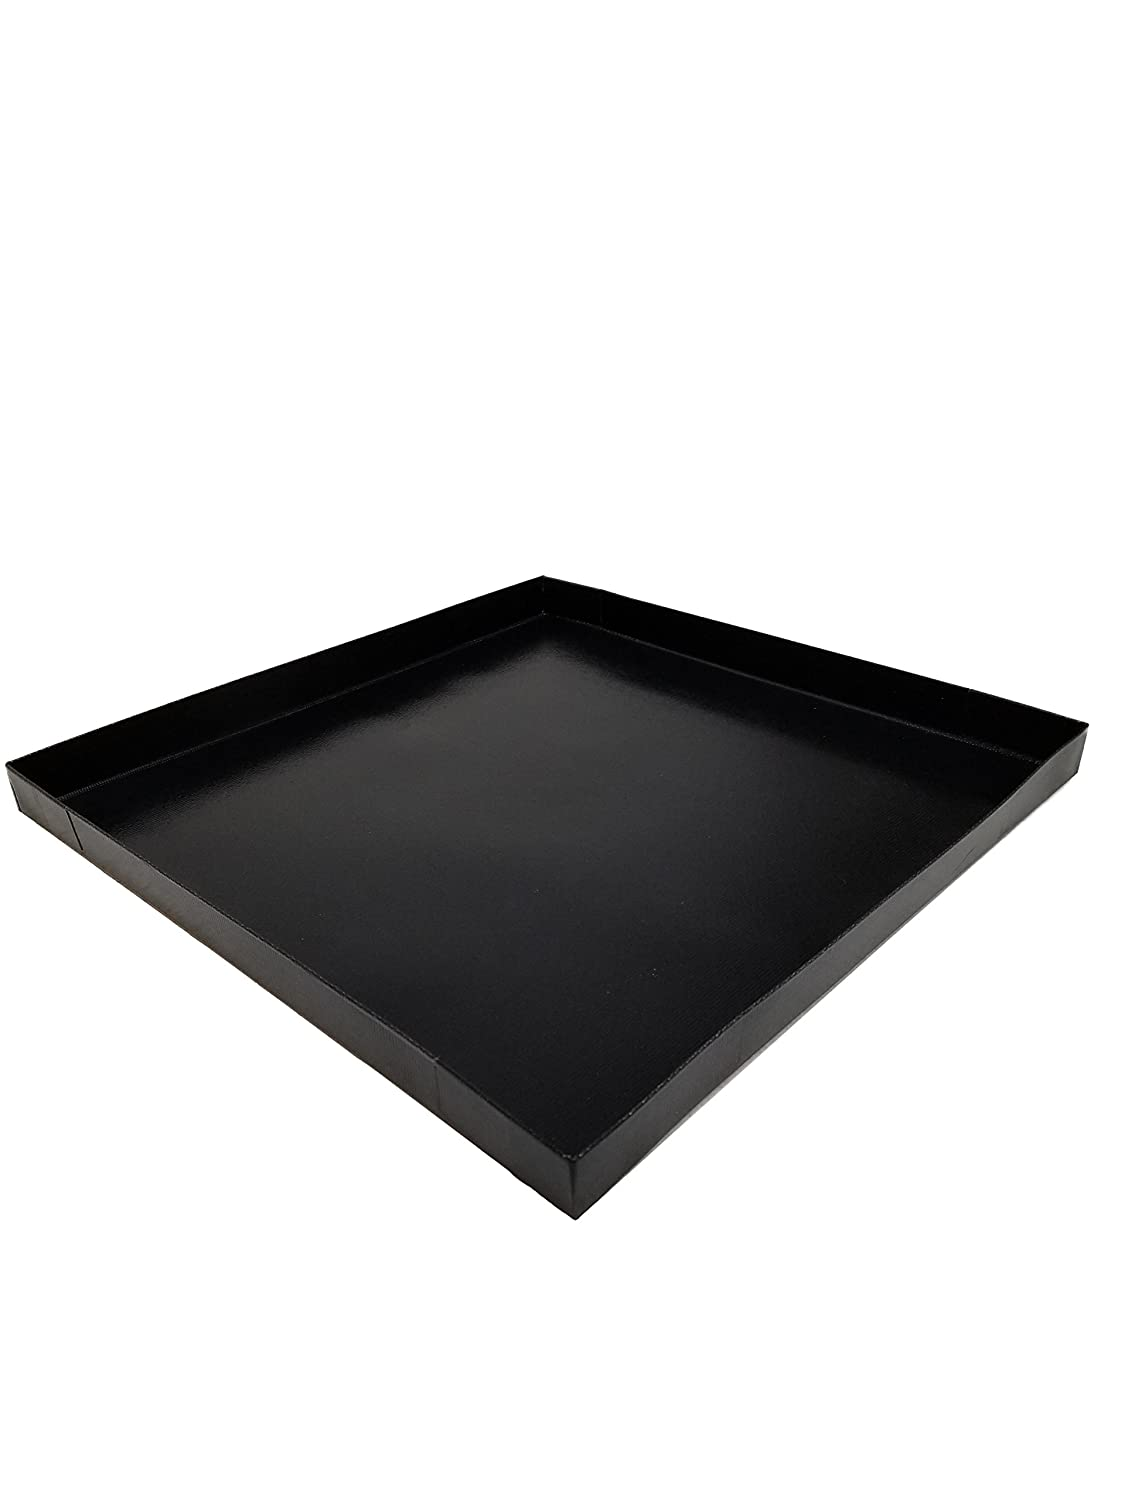 """13.5"""" x 13.5"""" PTFE Solid Oven basket for TurboChef, Merrychef, and Amana (Replaces NGC-1380)"""